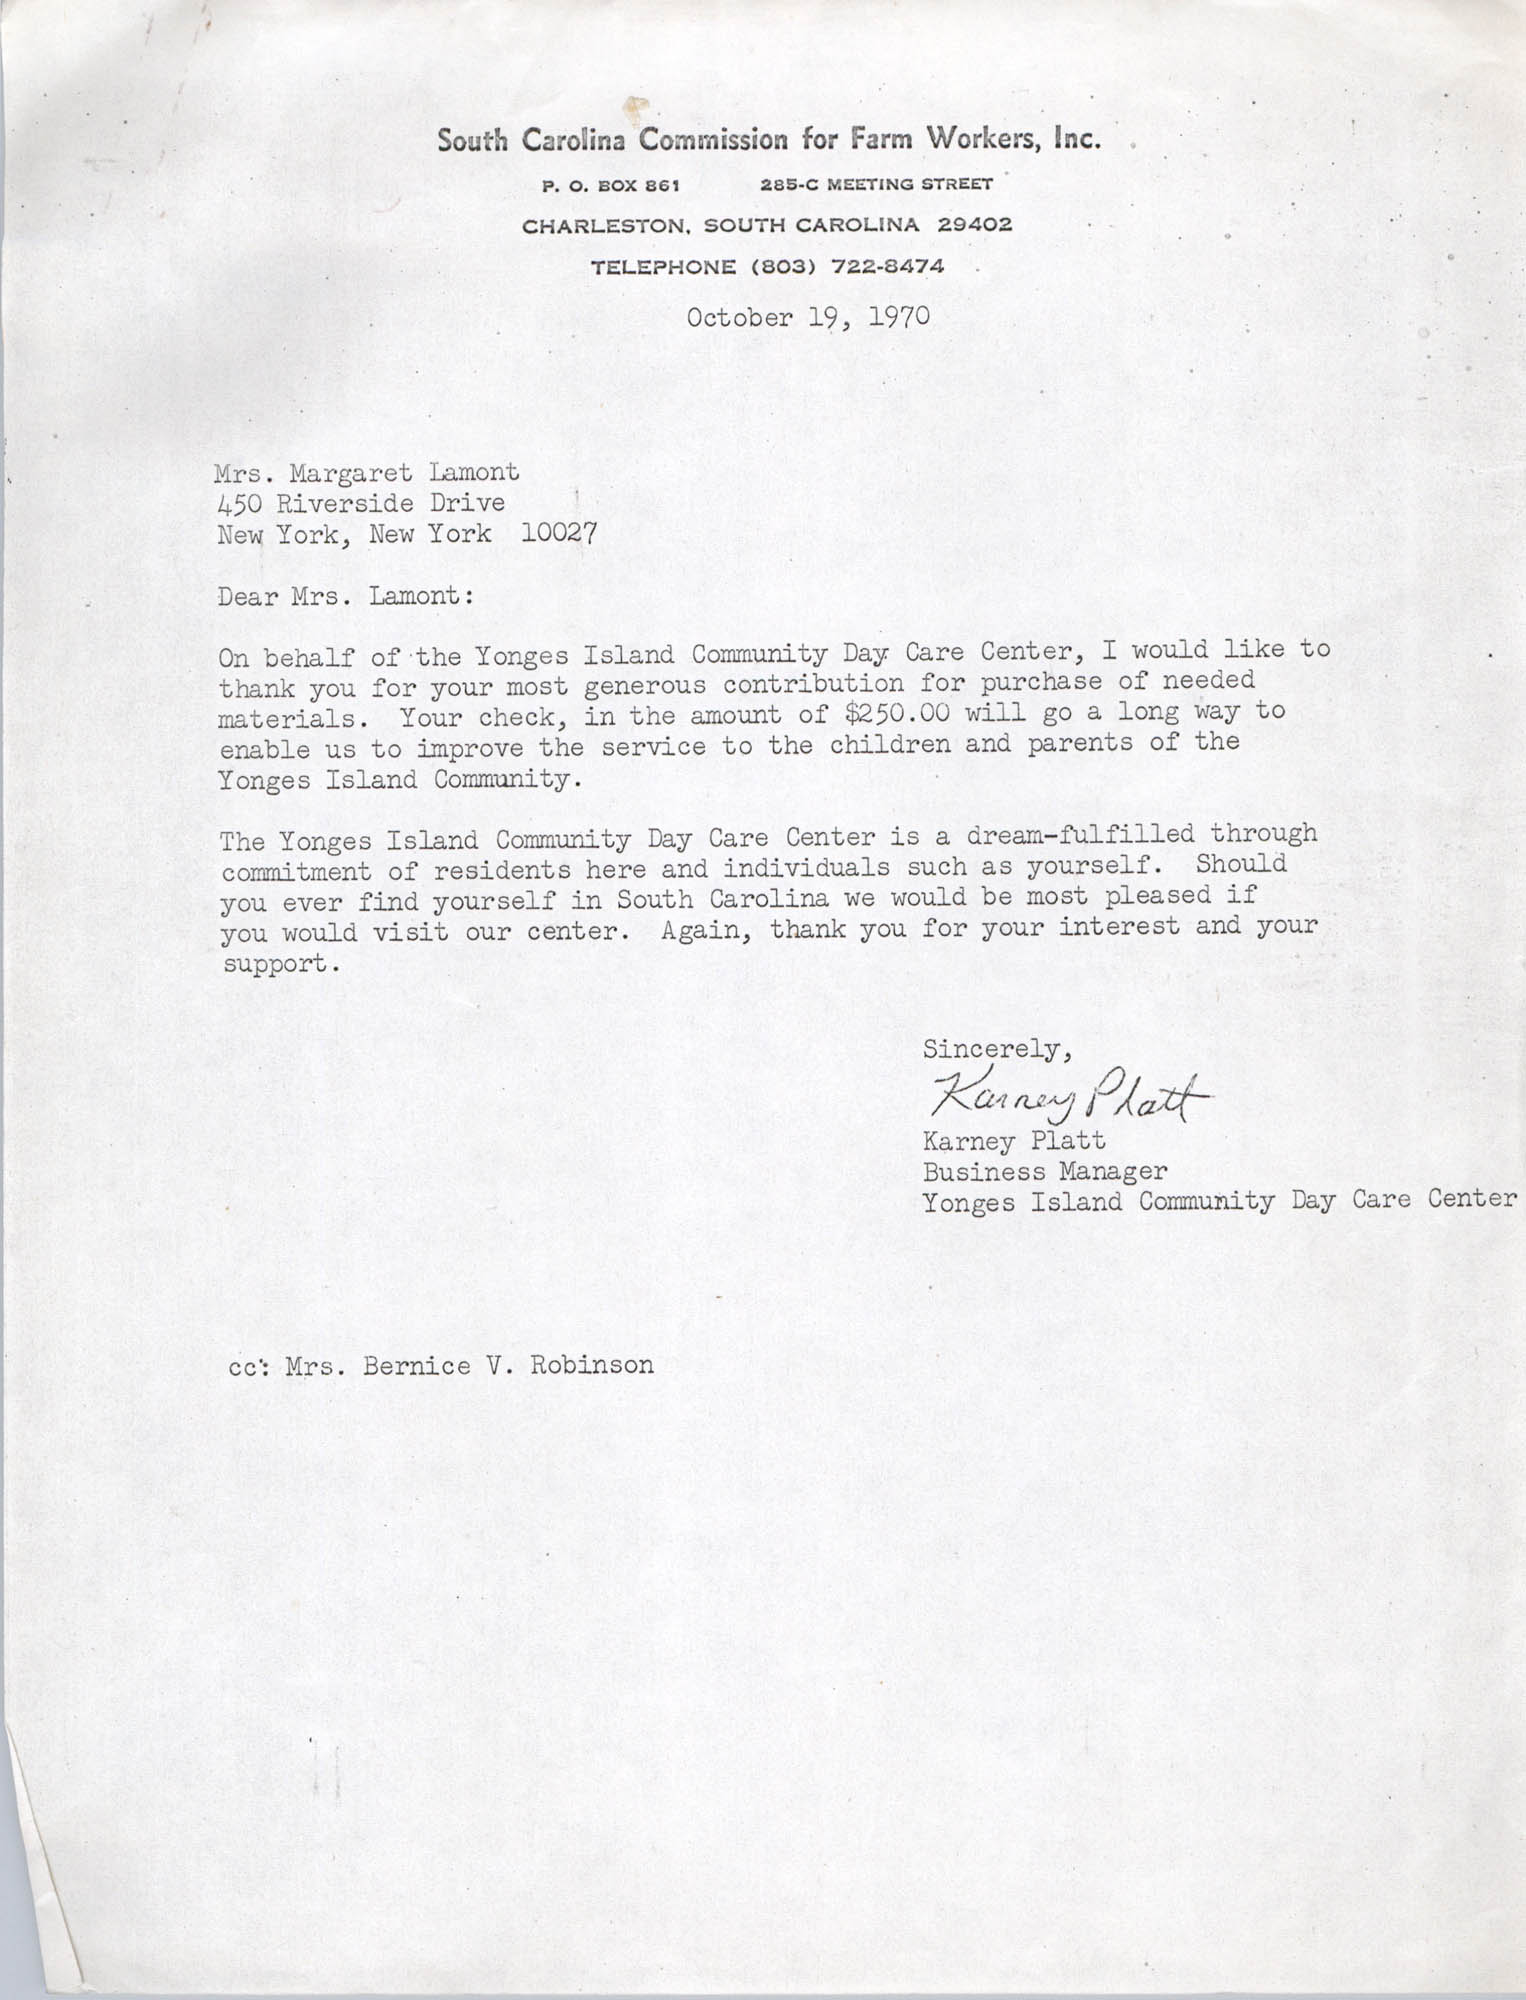 Letter from Karney Platt to Margaret Lamont, October 19, 1970